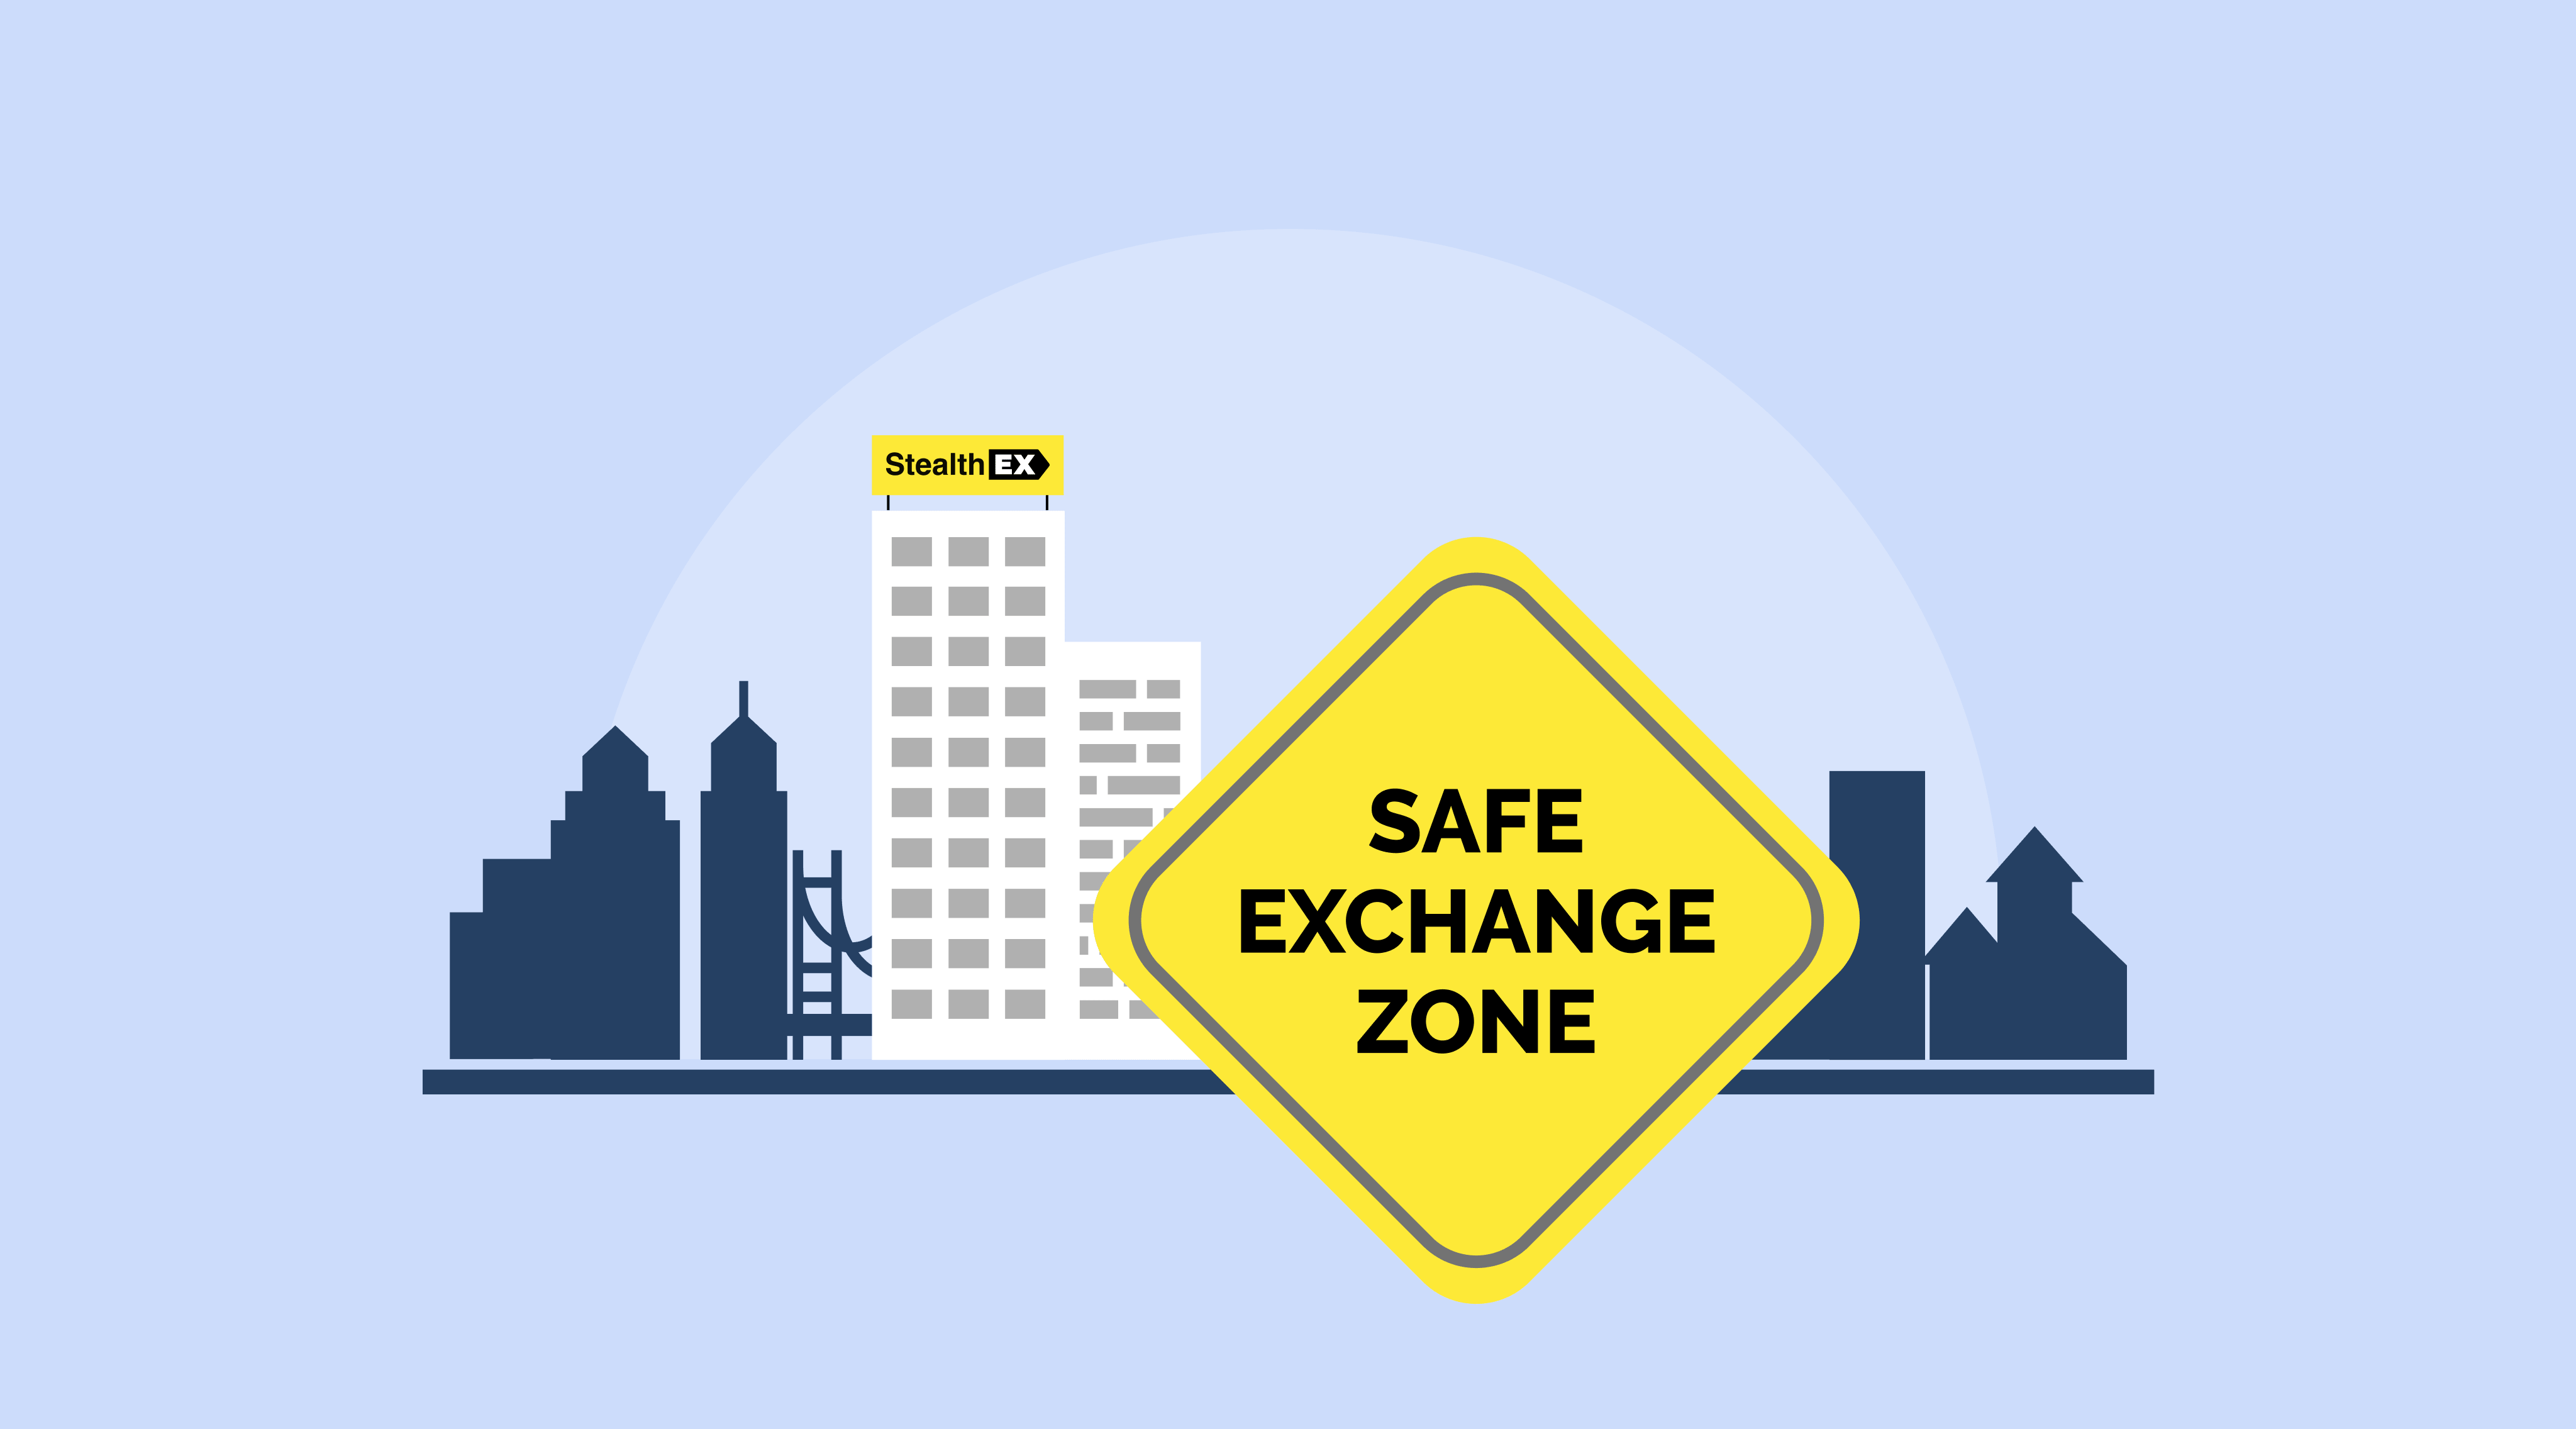 How to exchange cryptocurrency safe? Article by StealthEX